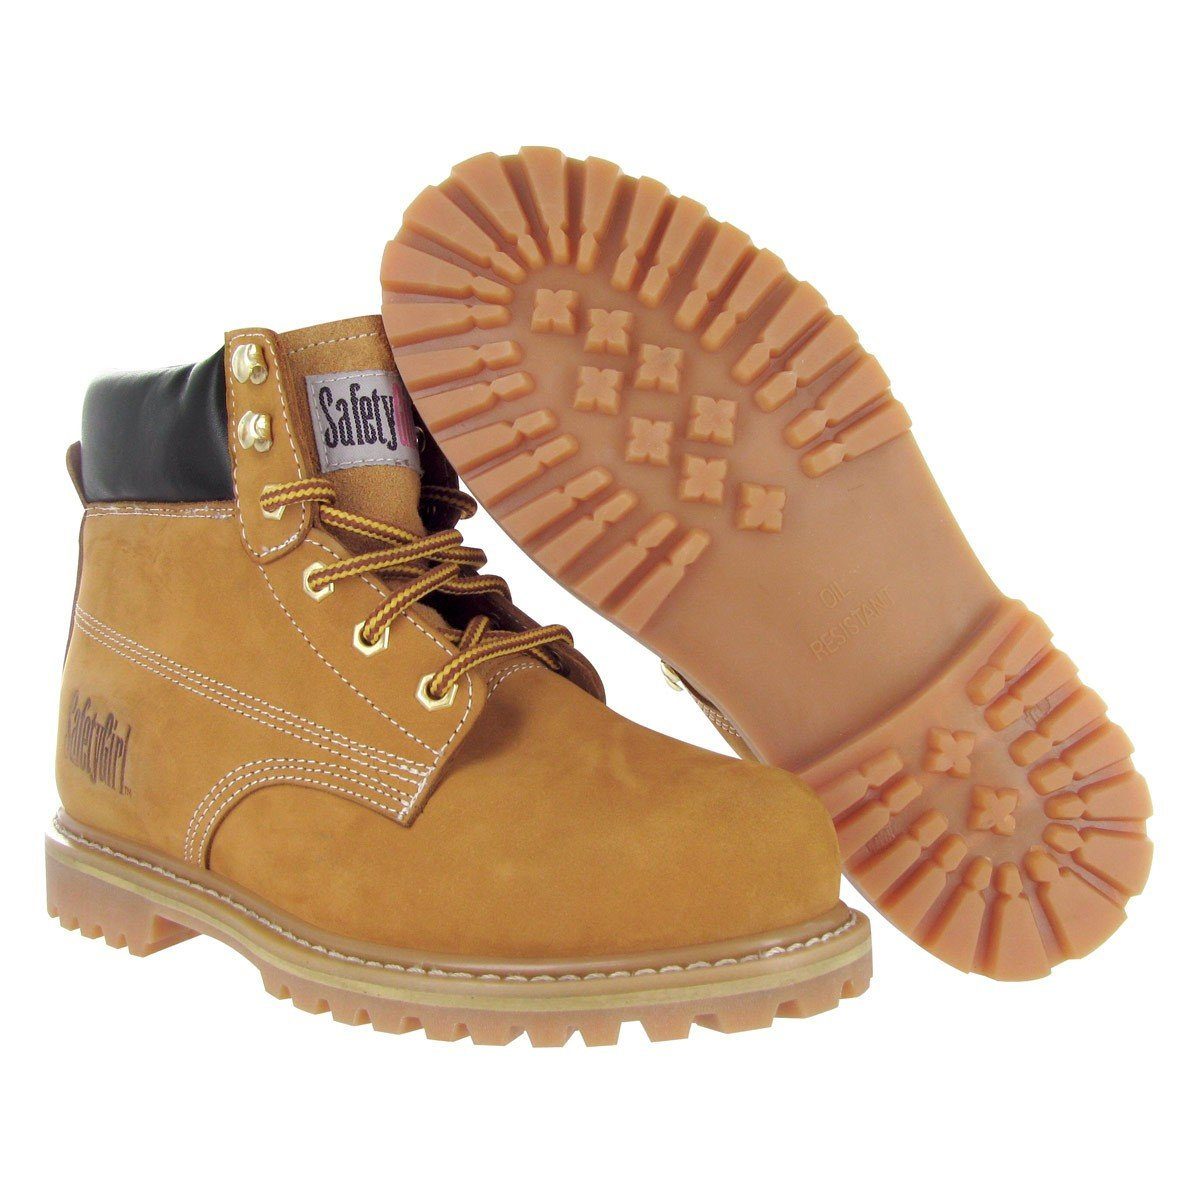 Safety Girl GS003-Tan-7M Steel Toe Work Boots Tan 7M Import - Many popular brands Englis